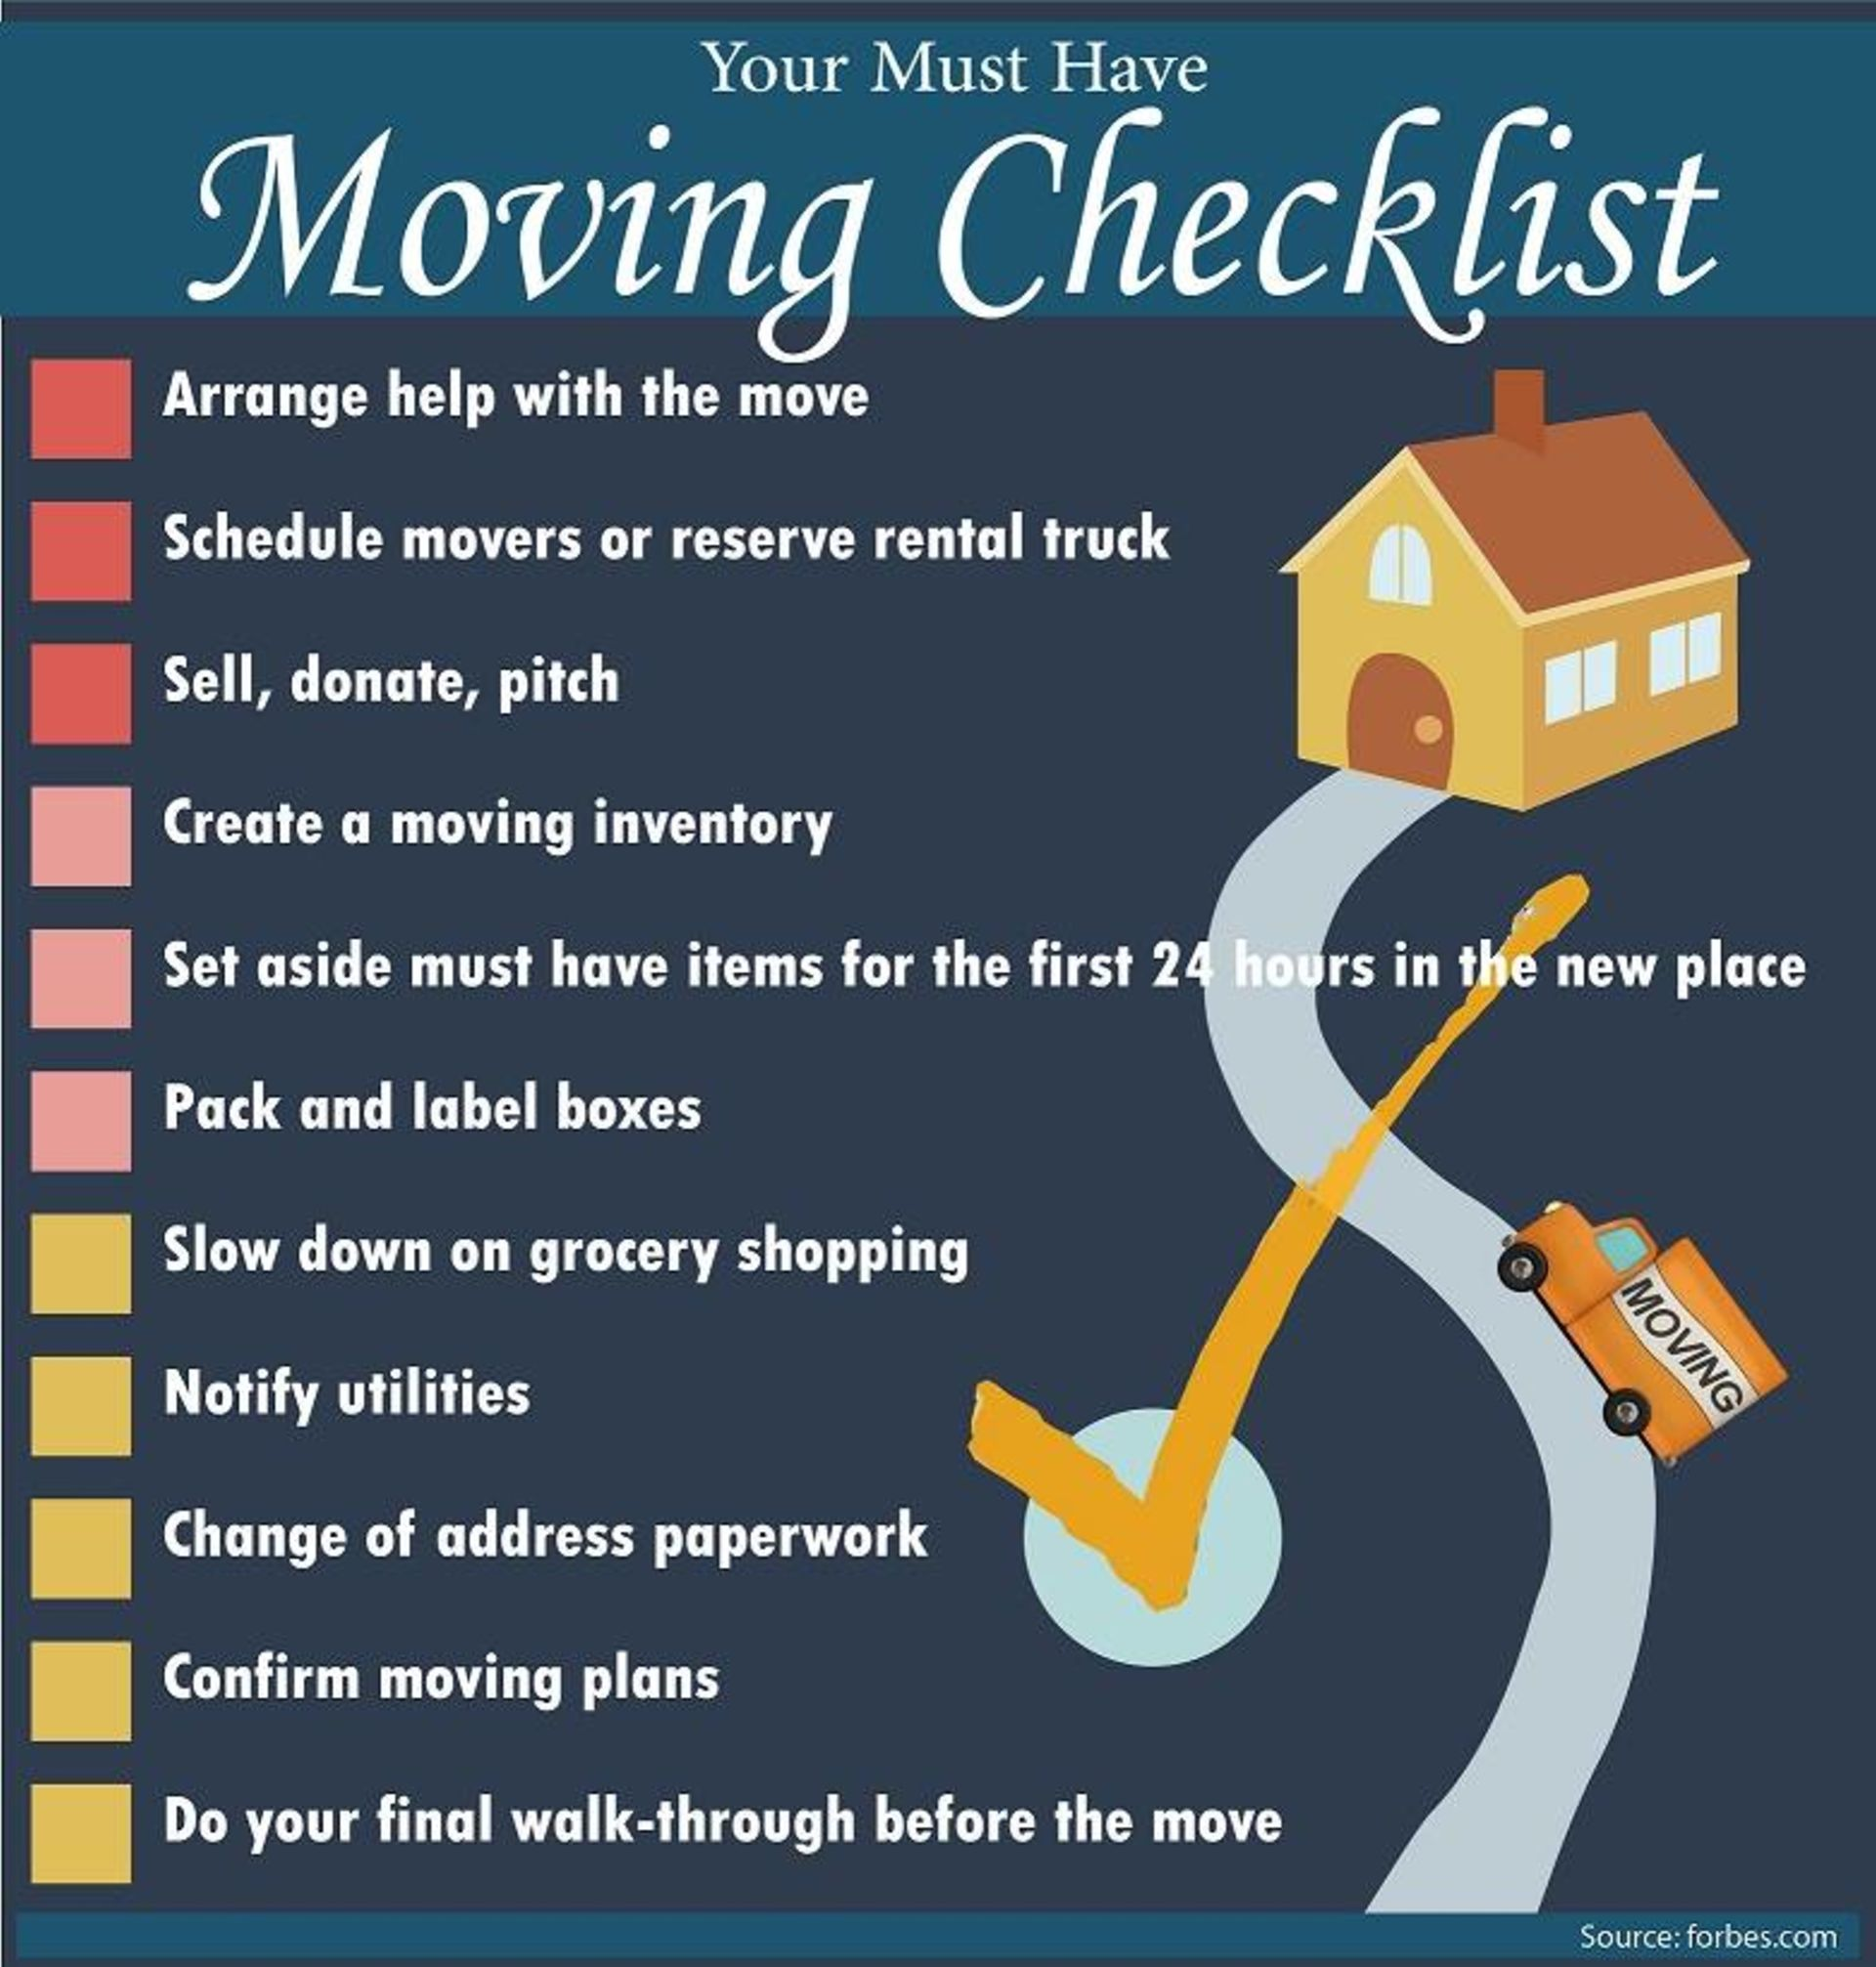 Getting ready for a big move?